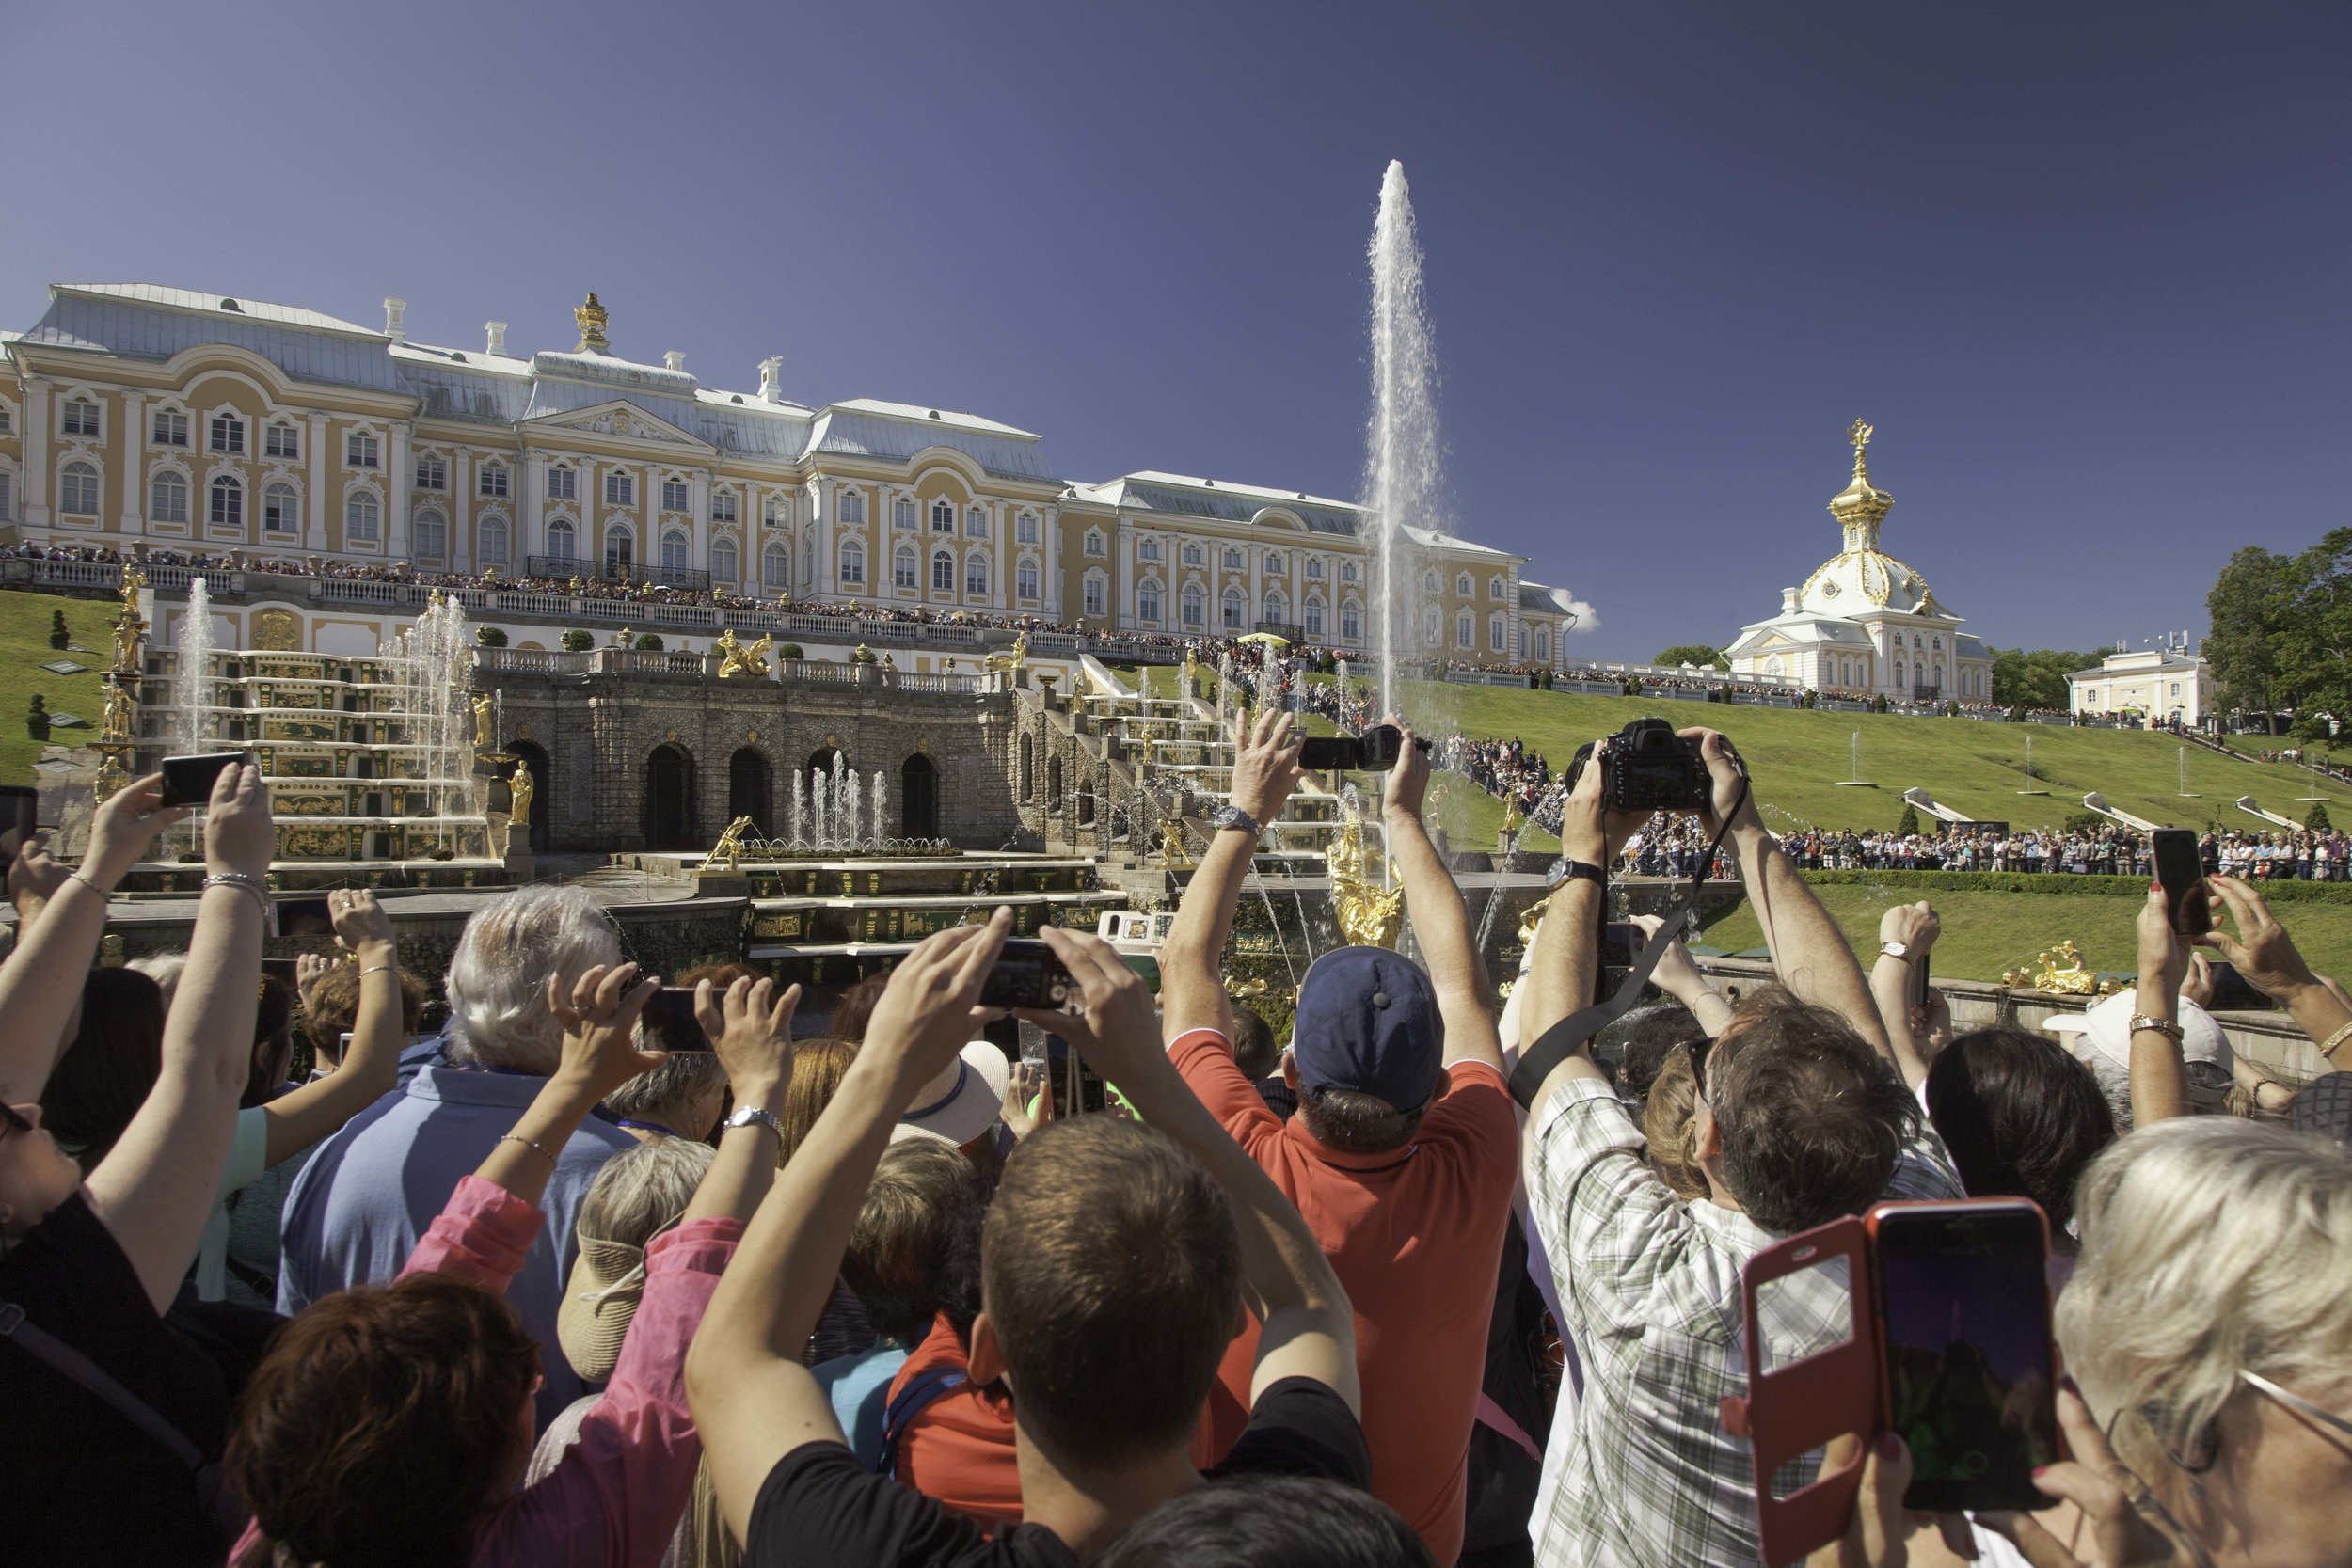 Crowds of tourist jostling to photograph the fountains at Petergof